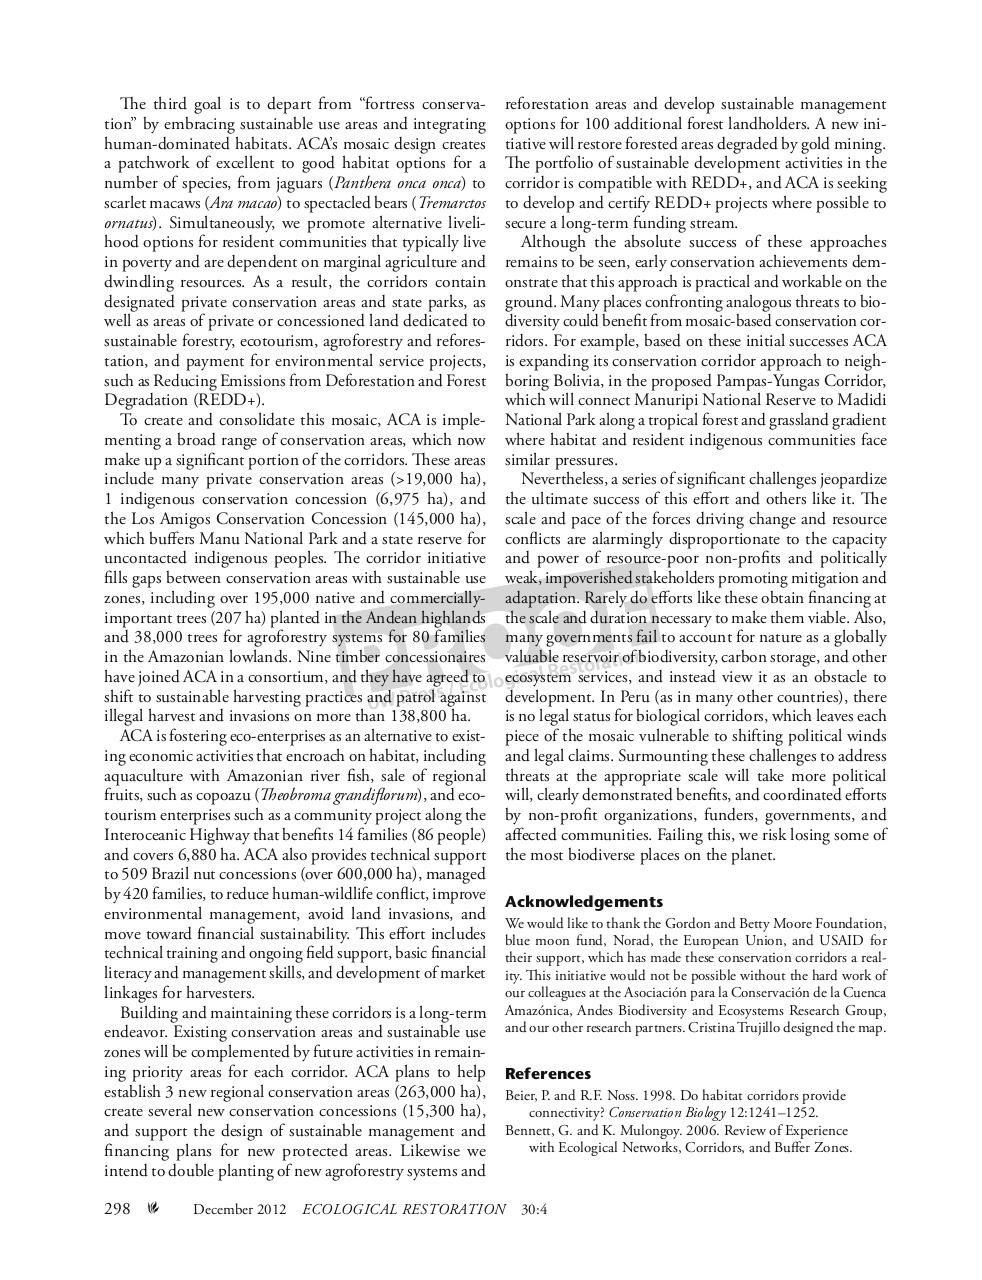 Rosenthal Stutzman Forsyth_Ecological Restoration_Mosaic Conservation Corridors_2012.pdf - page 3/4